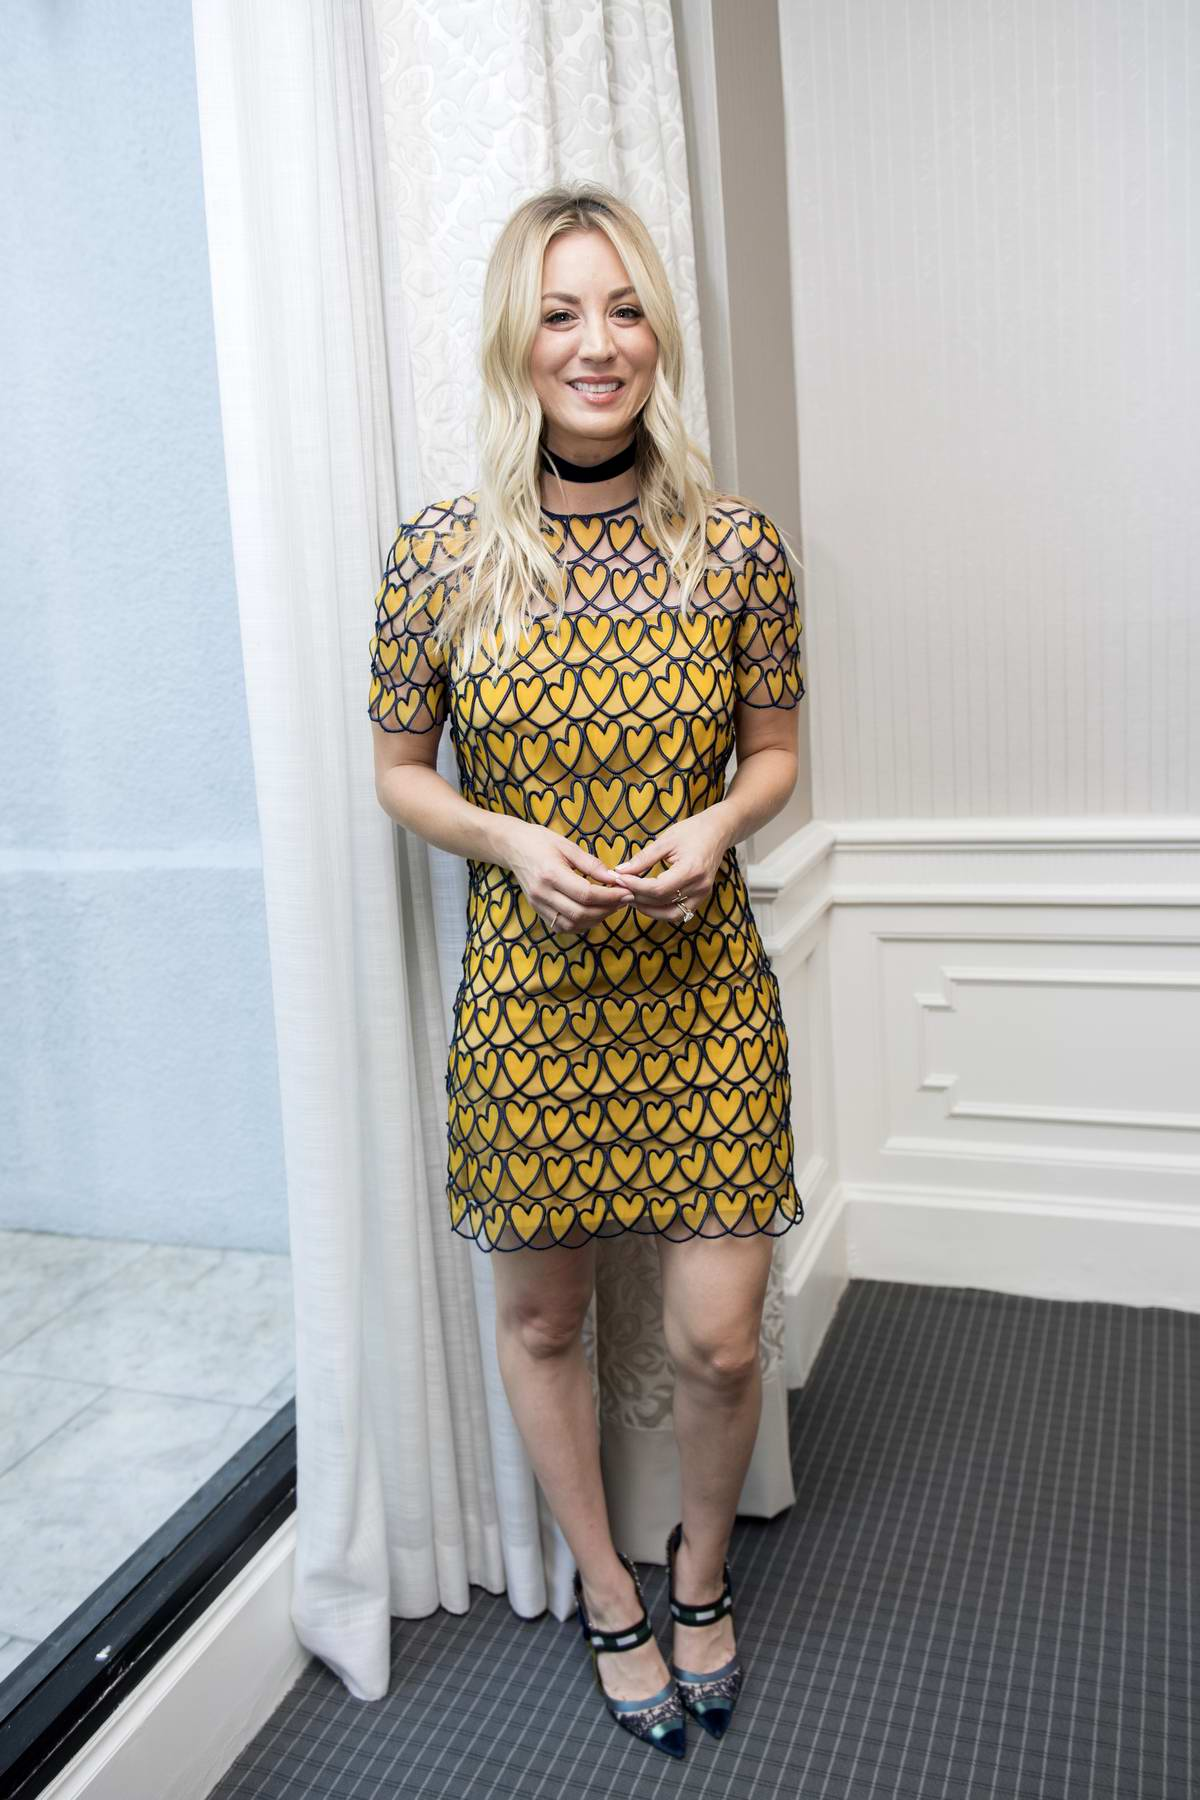 Kaley Cuoco at The Big Bang Theory Press Conference at the London Hotel in West Hollywood, Los Angeles